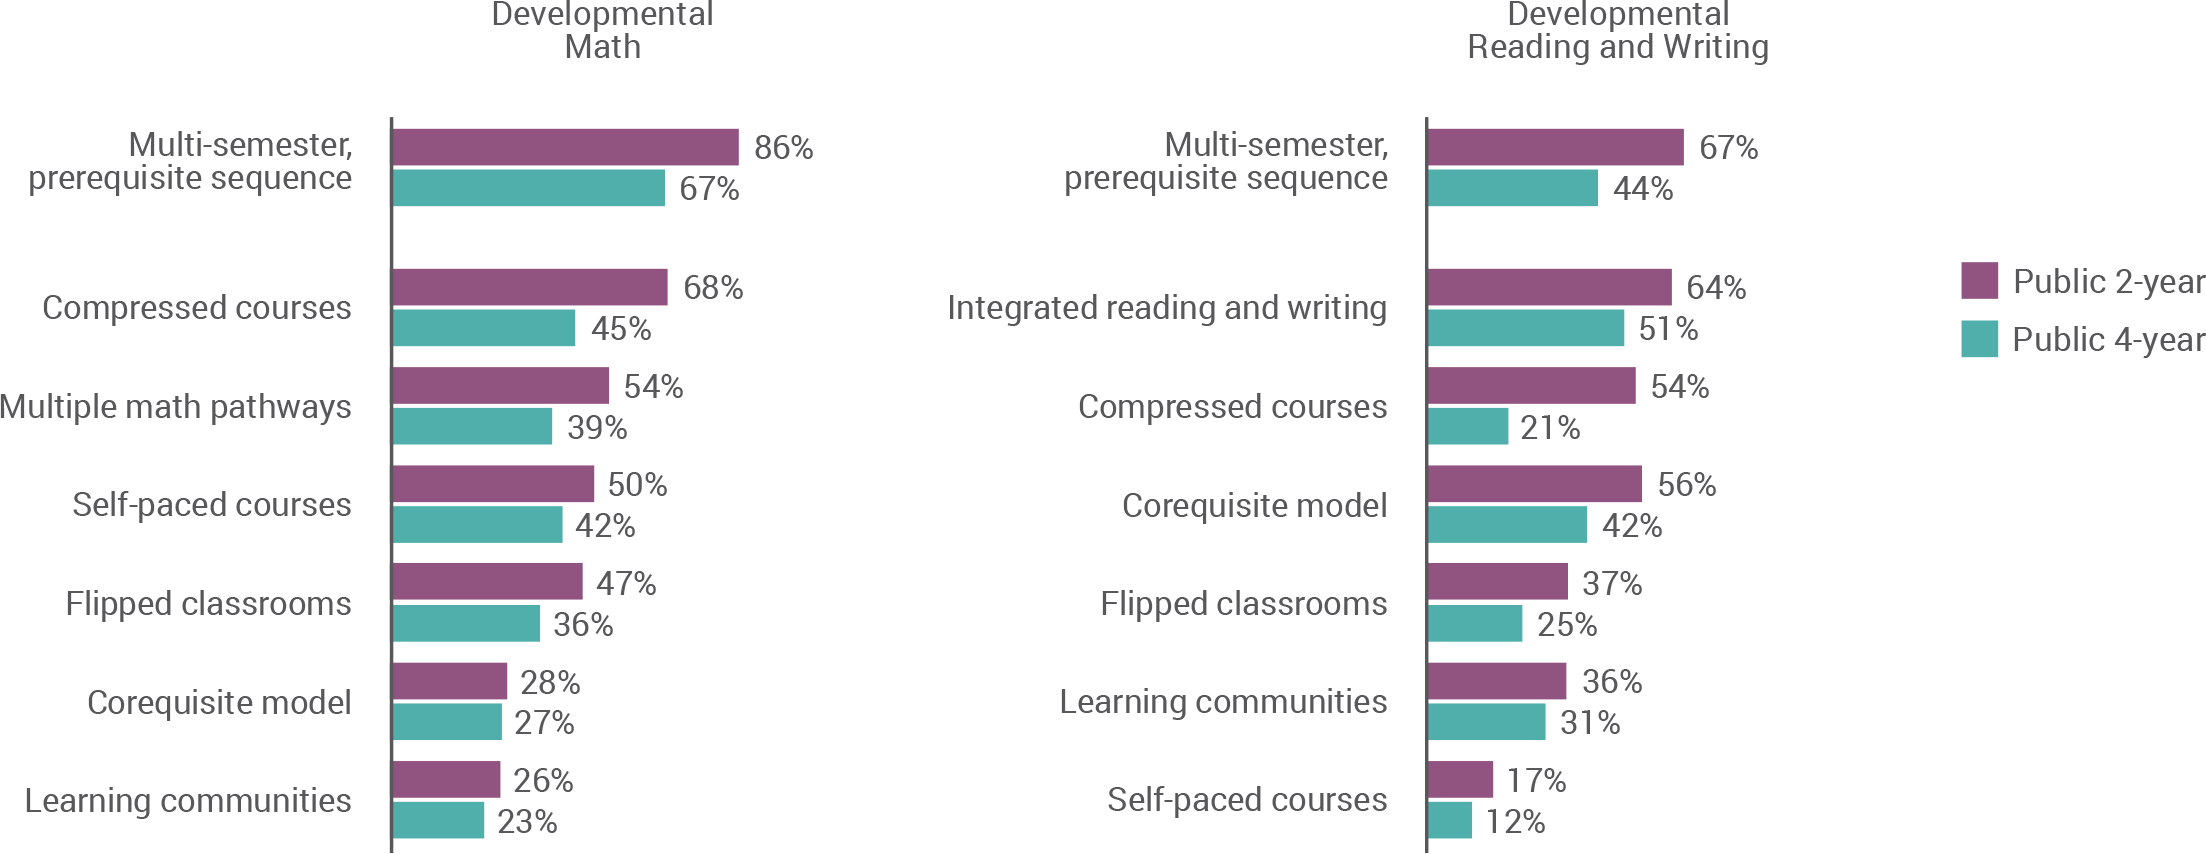 Developmental math, public 2-year: multisemester prerequisite sequence, 86%; compressed courses, 68%; multiple math pathways, 54%; self-paced courses, 50%; flipped classrooms, 47%; corequisite model, 28%; learning communities, 26%. Developmental math, public 4-year: multisemester prerequisite sequence, 67%; compressed courses, 45%; multiple math pathways, 39%; self-paced courses, 42%; flipped classrooms, 36%; corequisite model, 27%; learning communities, 23%. Developmental reading and writing, public 2-year: multisemester prerequisite sequence, 67%; integrated reading and writing, 64%; compressed courses, 54%; corequisite model, 56%; flipped classrooms, 37%; learning communities, 36%; self-paced courses, 17%. Developmental reading and writing, public 4-year: multisemester prerequisite sequence, 44%; integrated reading and writing, 51%; compressed courses, 21%; corequisite model, 42%; flipped classrooms, 25%; learning communities, 31%; self-paced courses, 12%.